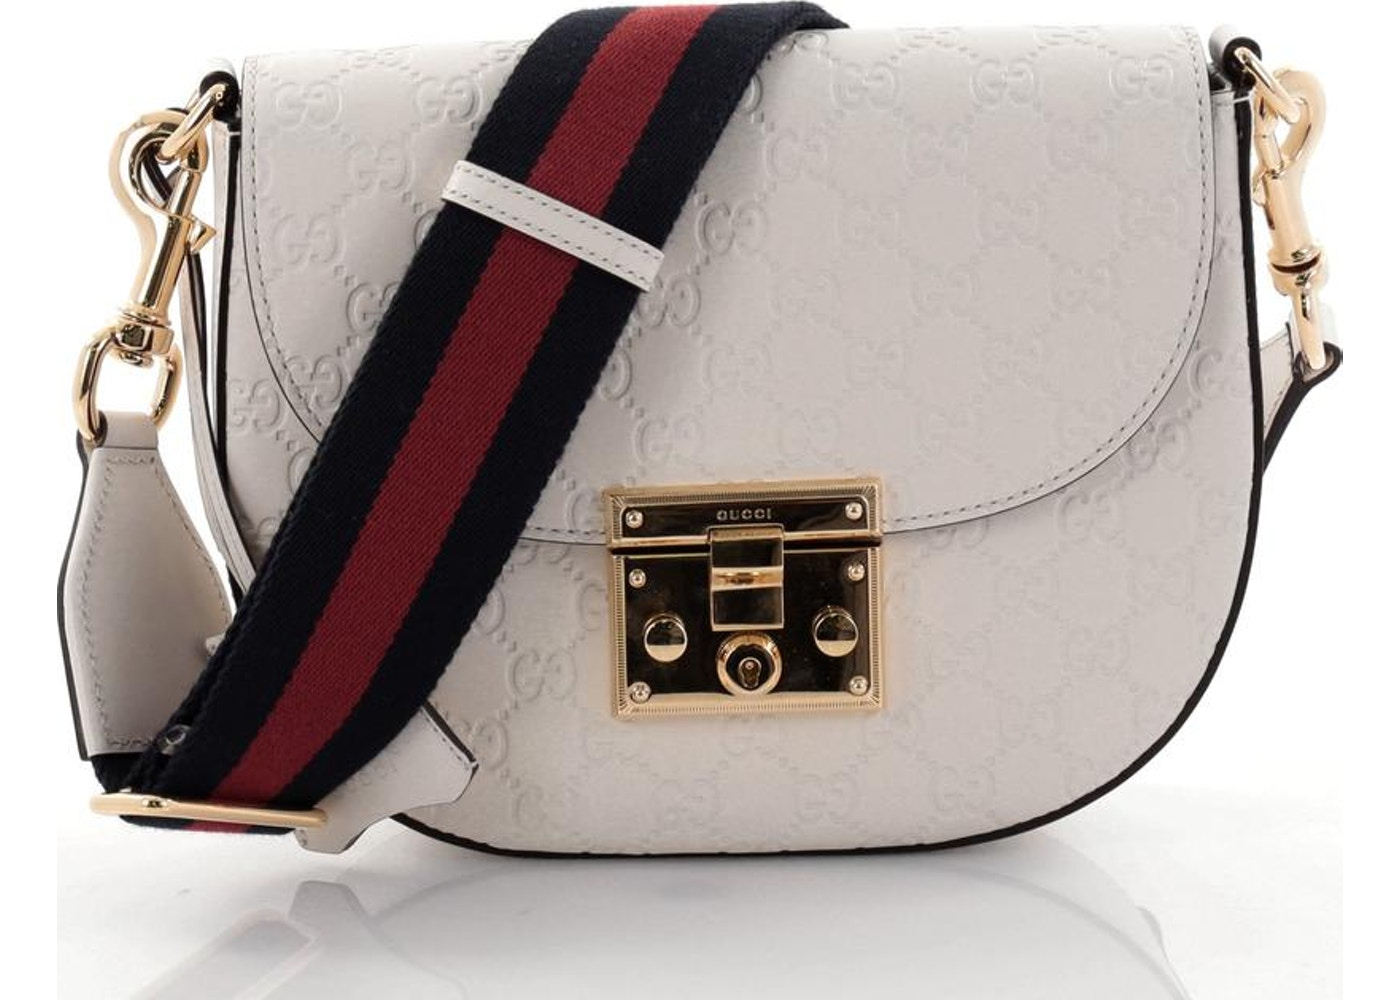 Gucci Padlock Saddle Shoulder Bag Monogram Guccissima Medium Off White Black Red